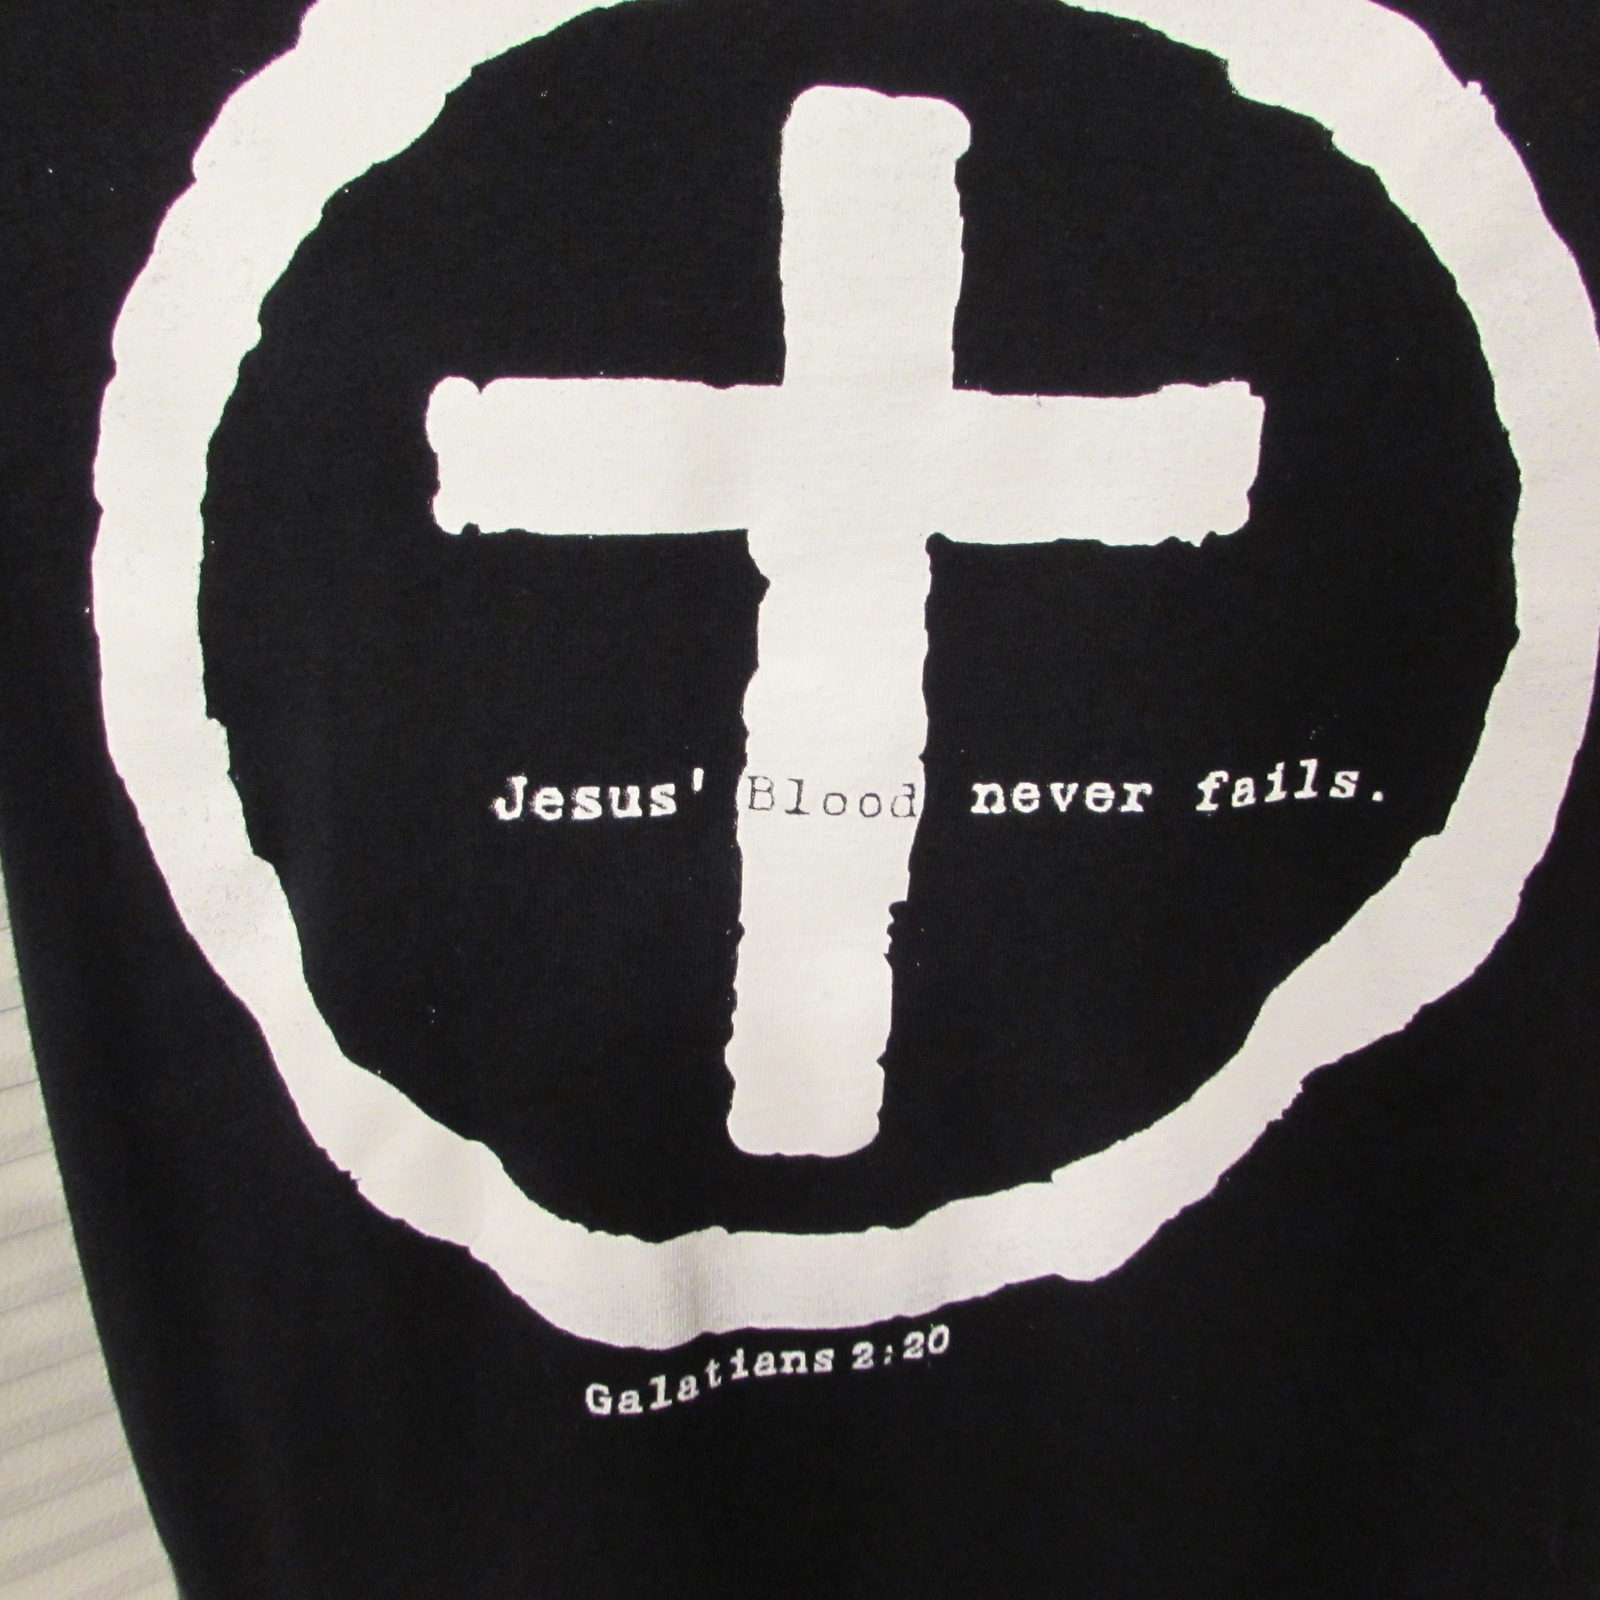 "Men's Christian Religious T-Shirt ""Jesus Blood Never Fails-Galatians 2:20"" S: M"